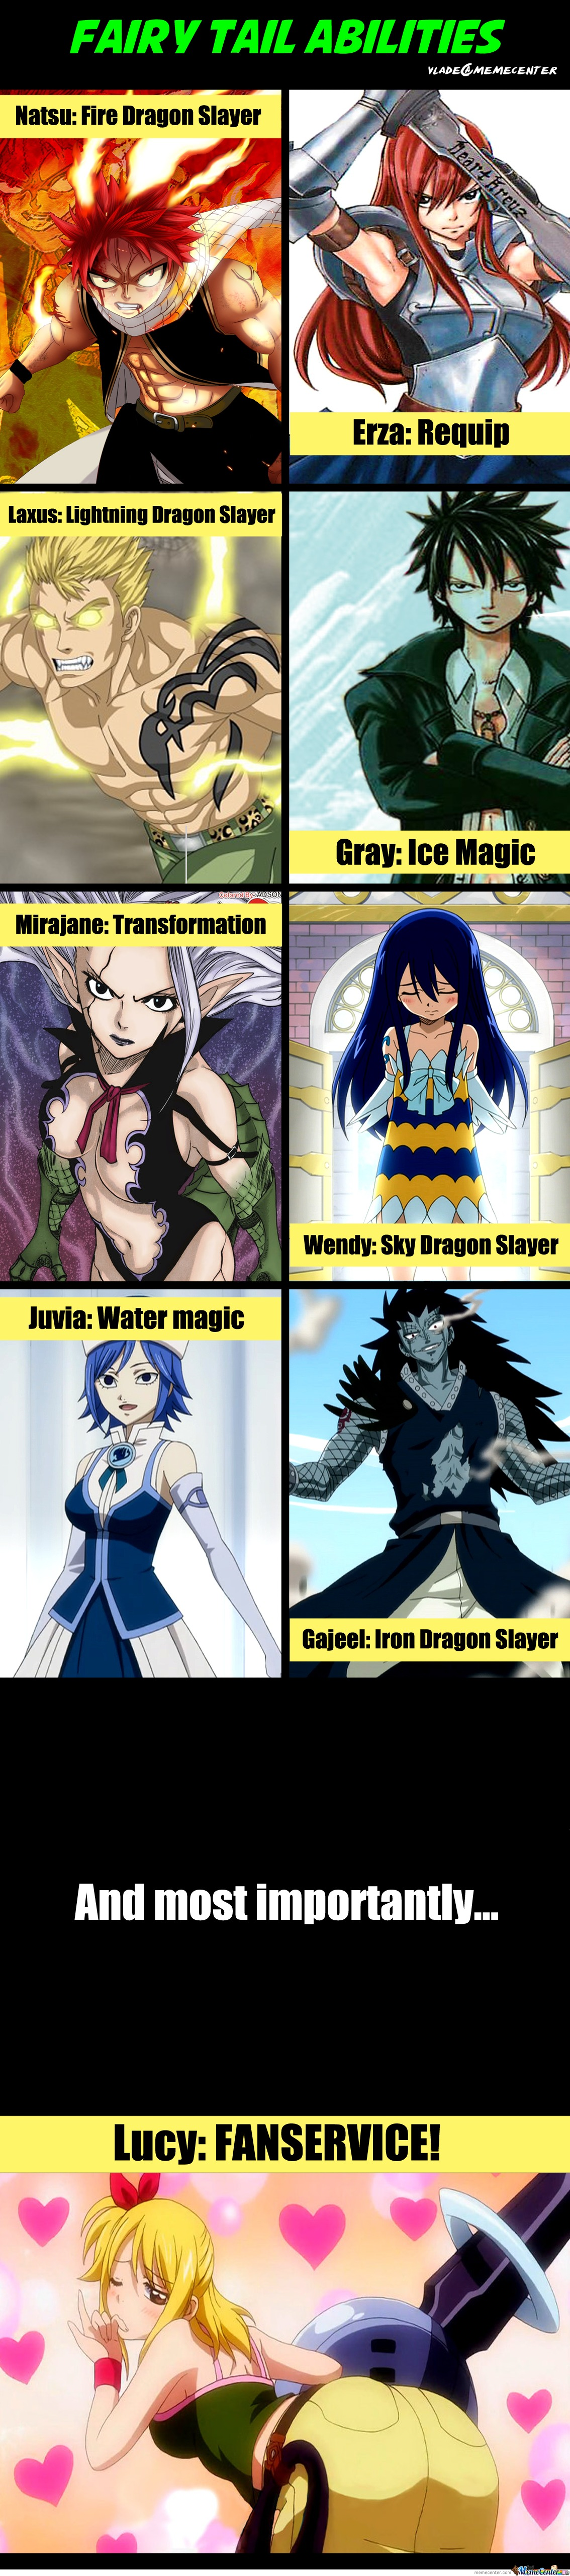 Fairy Tail Abilities